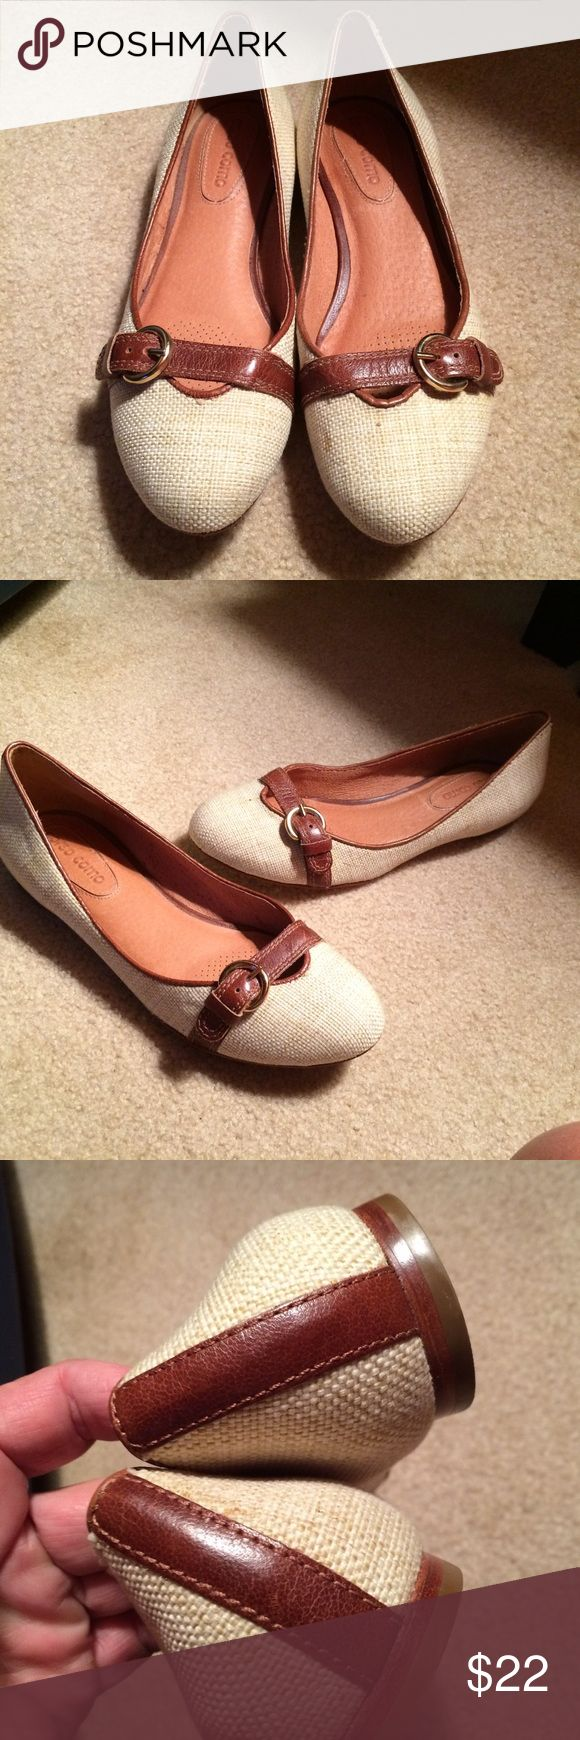 Corso  Como Beige Ballet Flats. Sz 7 Excellent Condition Sz 7. Beige & Tan. Leather Corso Como Shoes Flats & Loafers